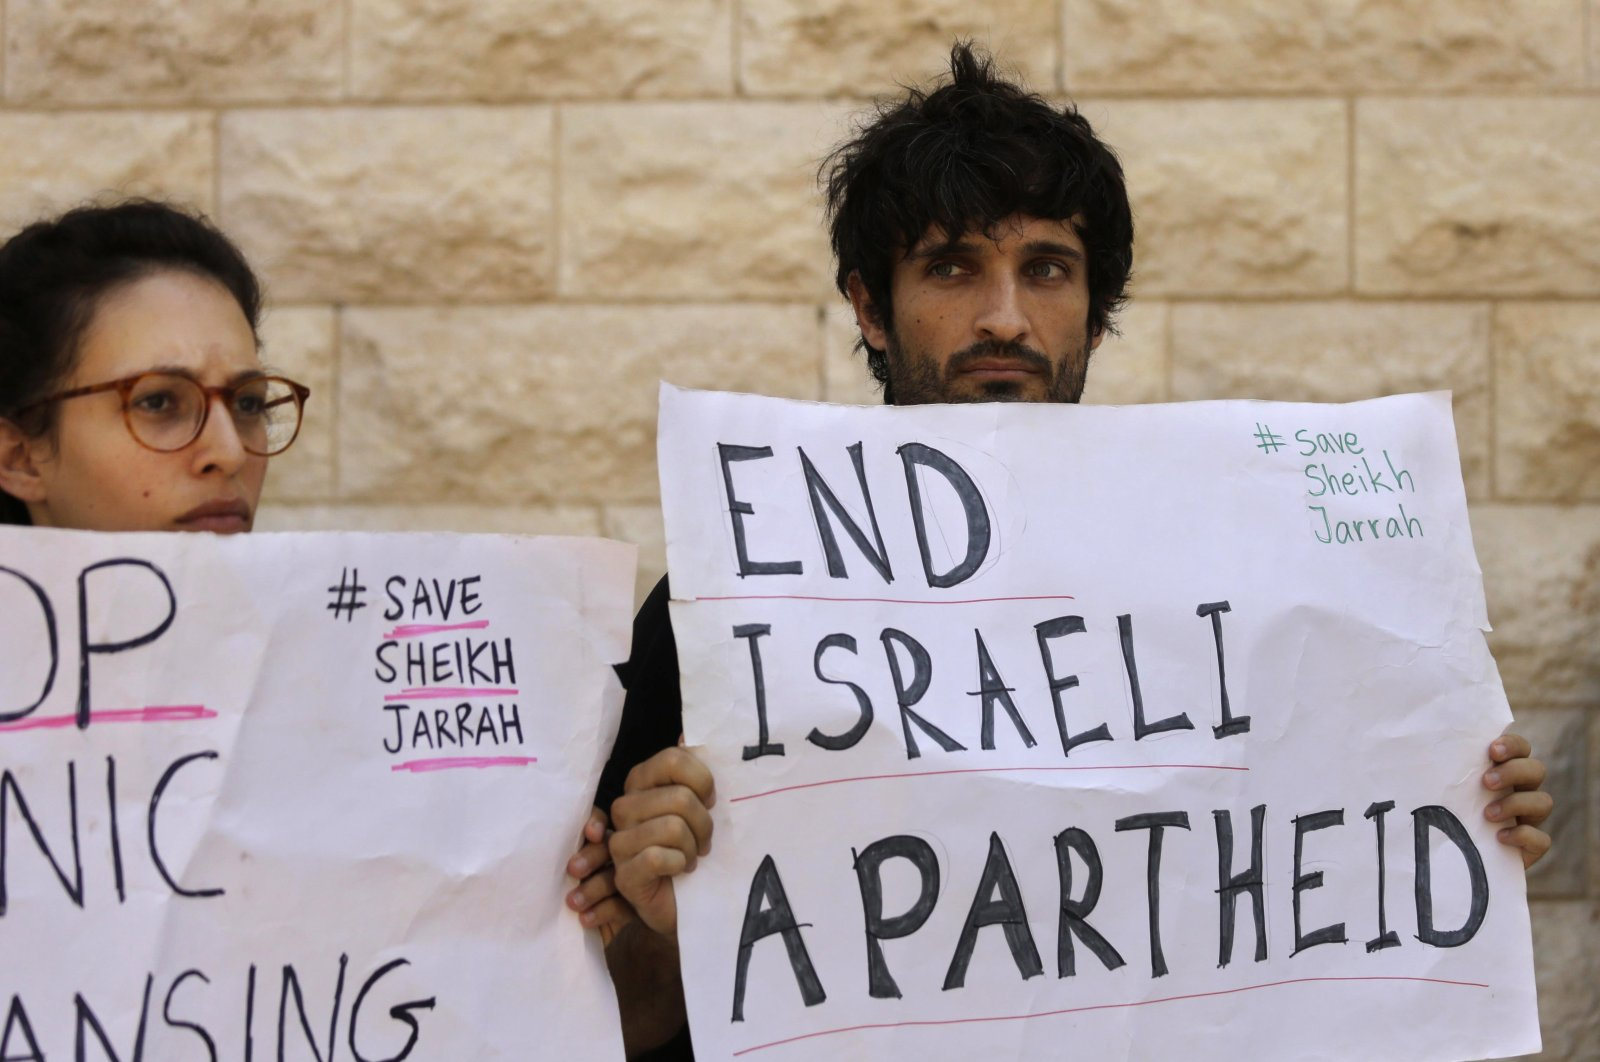 Protesters hold signs during a hearing on the possible evictions of Palestinians from Palestine's Sheikh Jarrah neighborhood in occupied East Jerusalem, outside the Israeli Supreme Court, West Jerusalem, Israel, Monday, Aug. 2, 2021. (AP Photo)